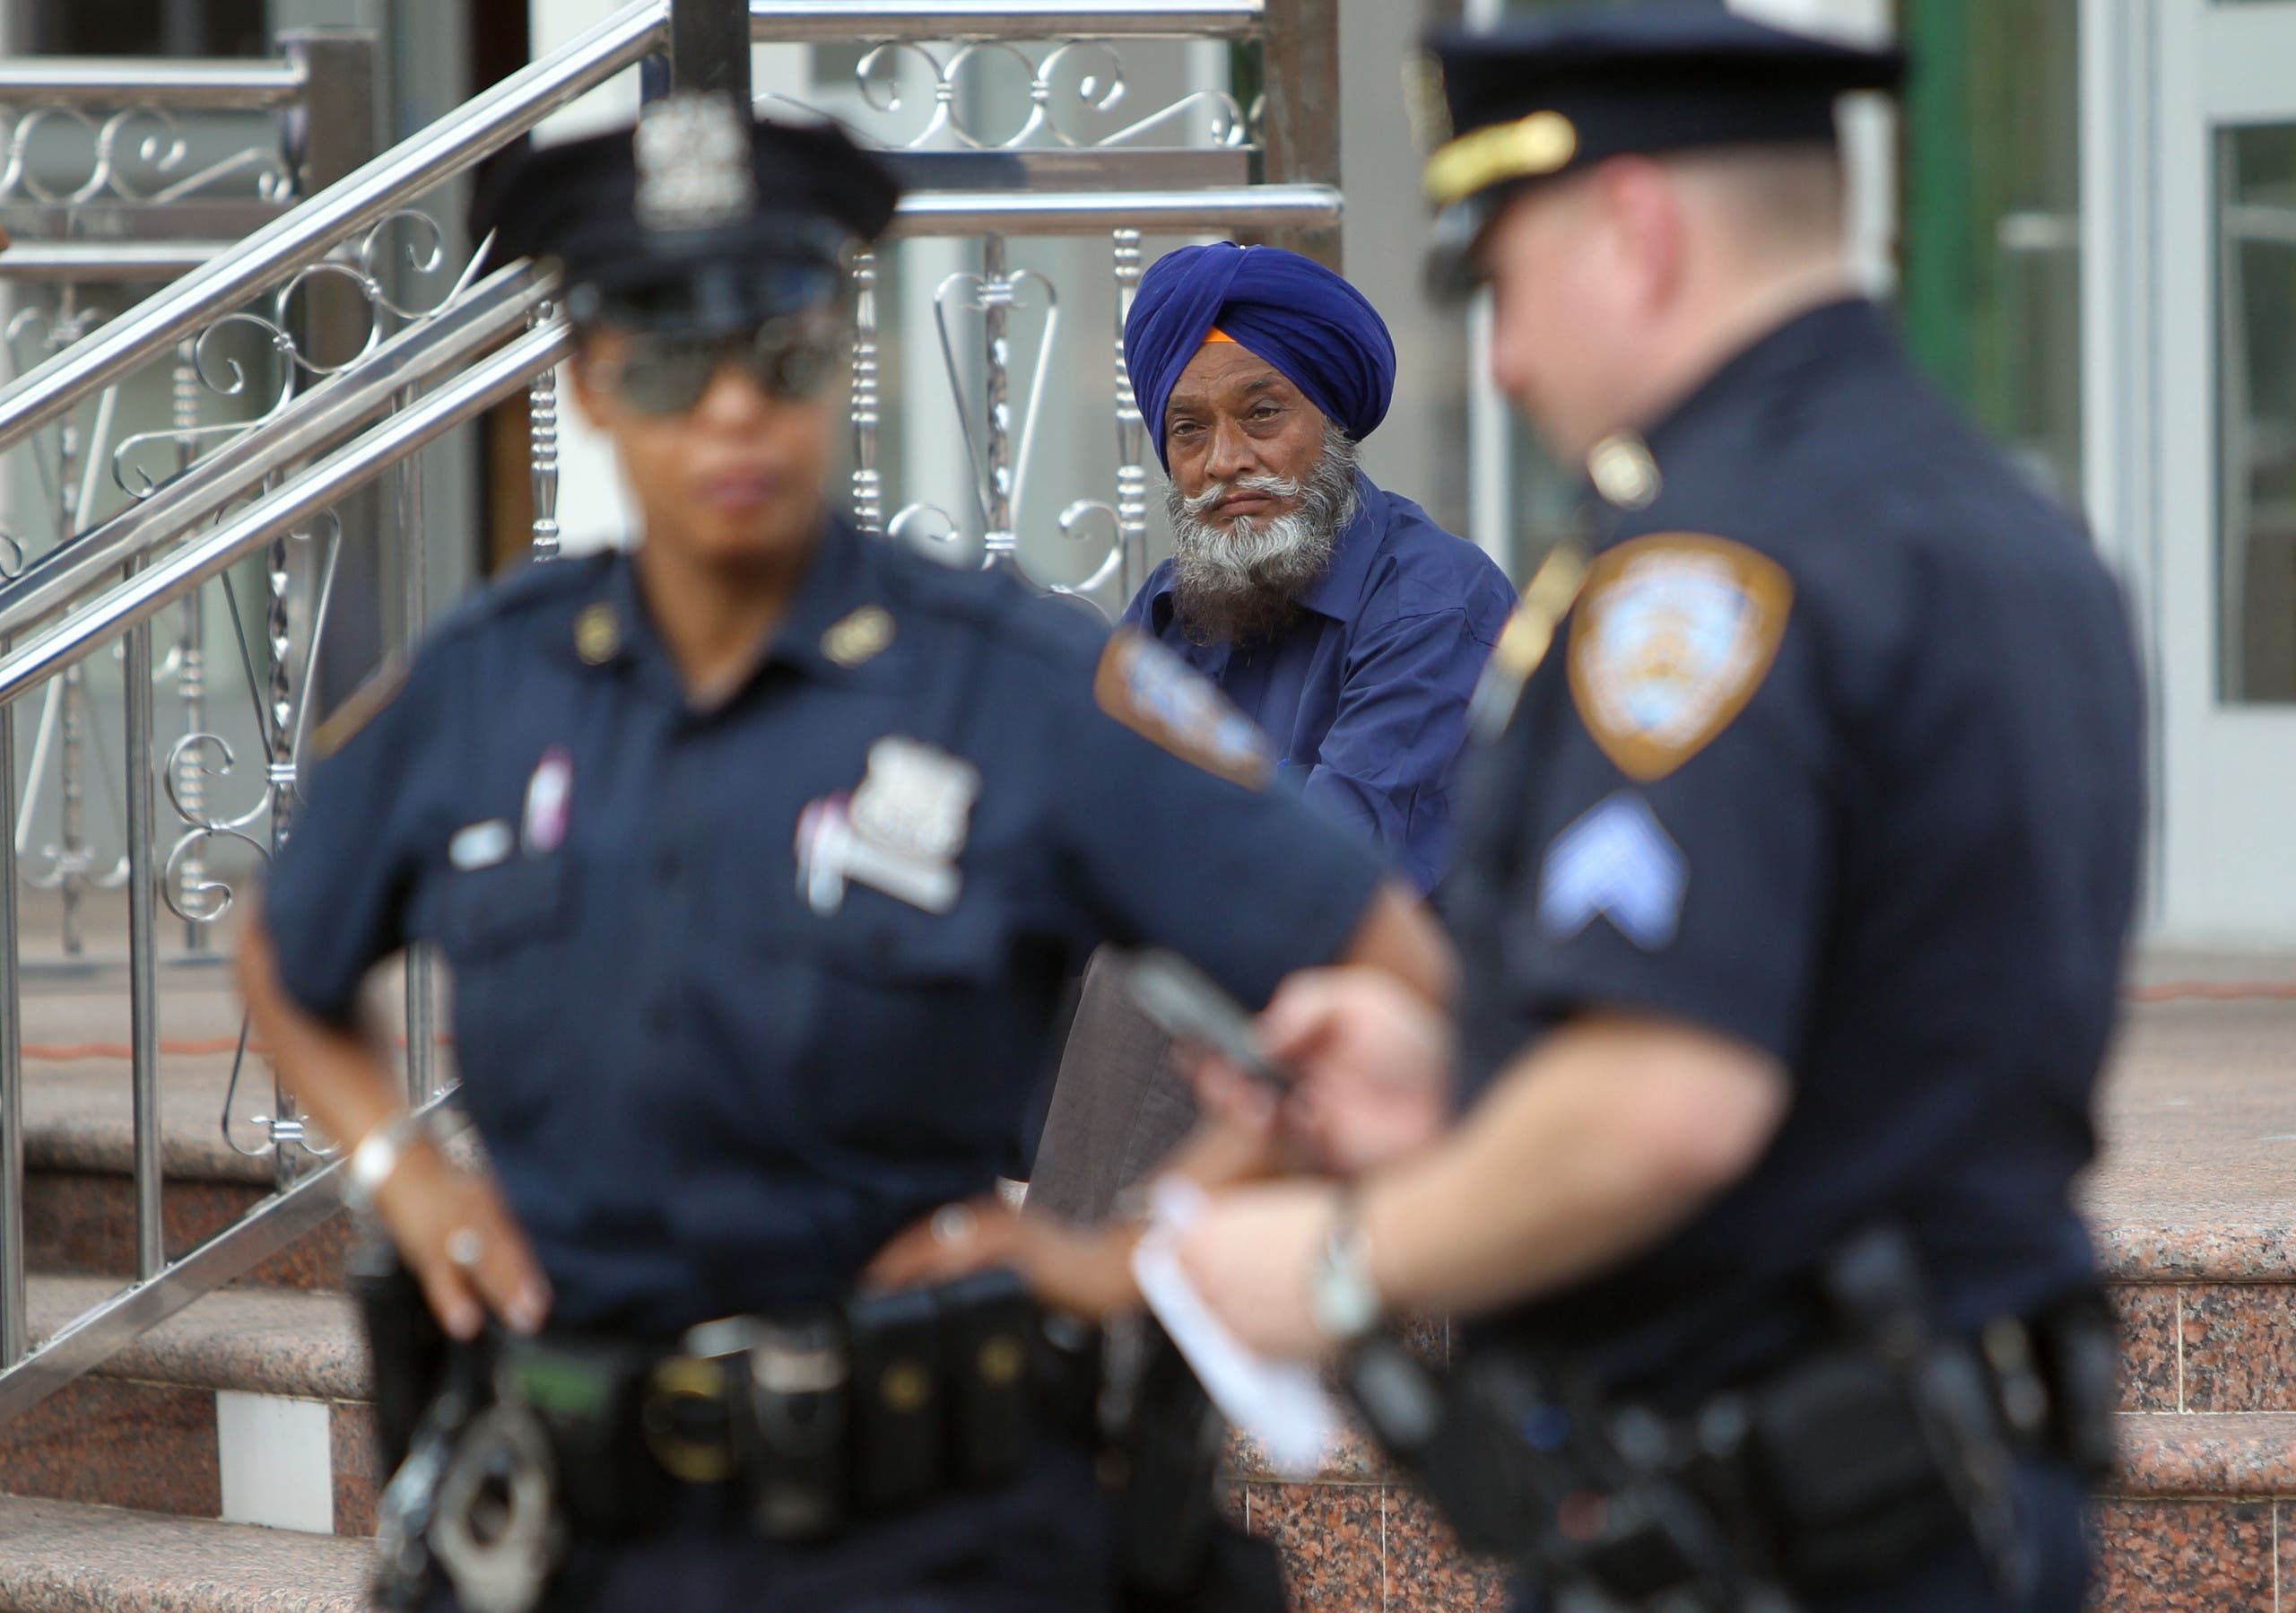 The revised policy, expected to be finalized next month, comes after a Muslim policeman filed a complaint against New York police last summer when he was suspended for wearing a beard that did not comply with regulations. (AFP)